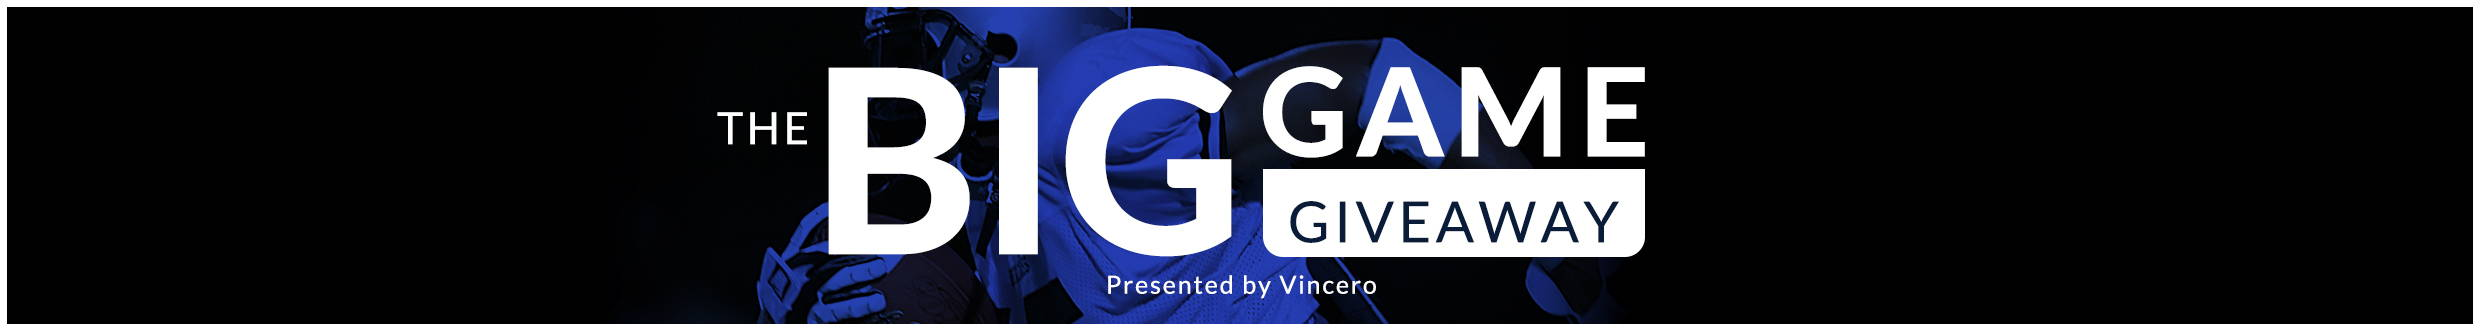 The Big Game Giveaway Presented By Vincero